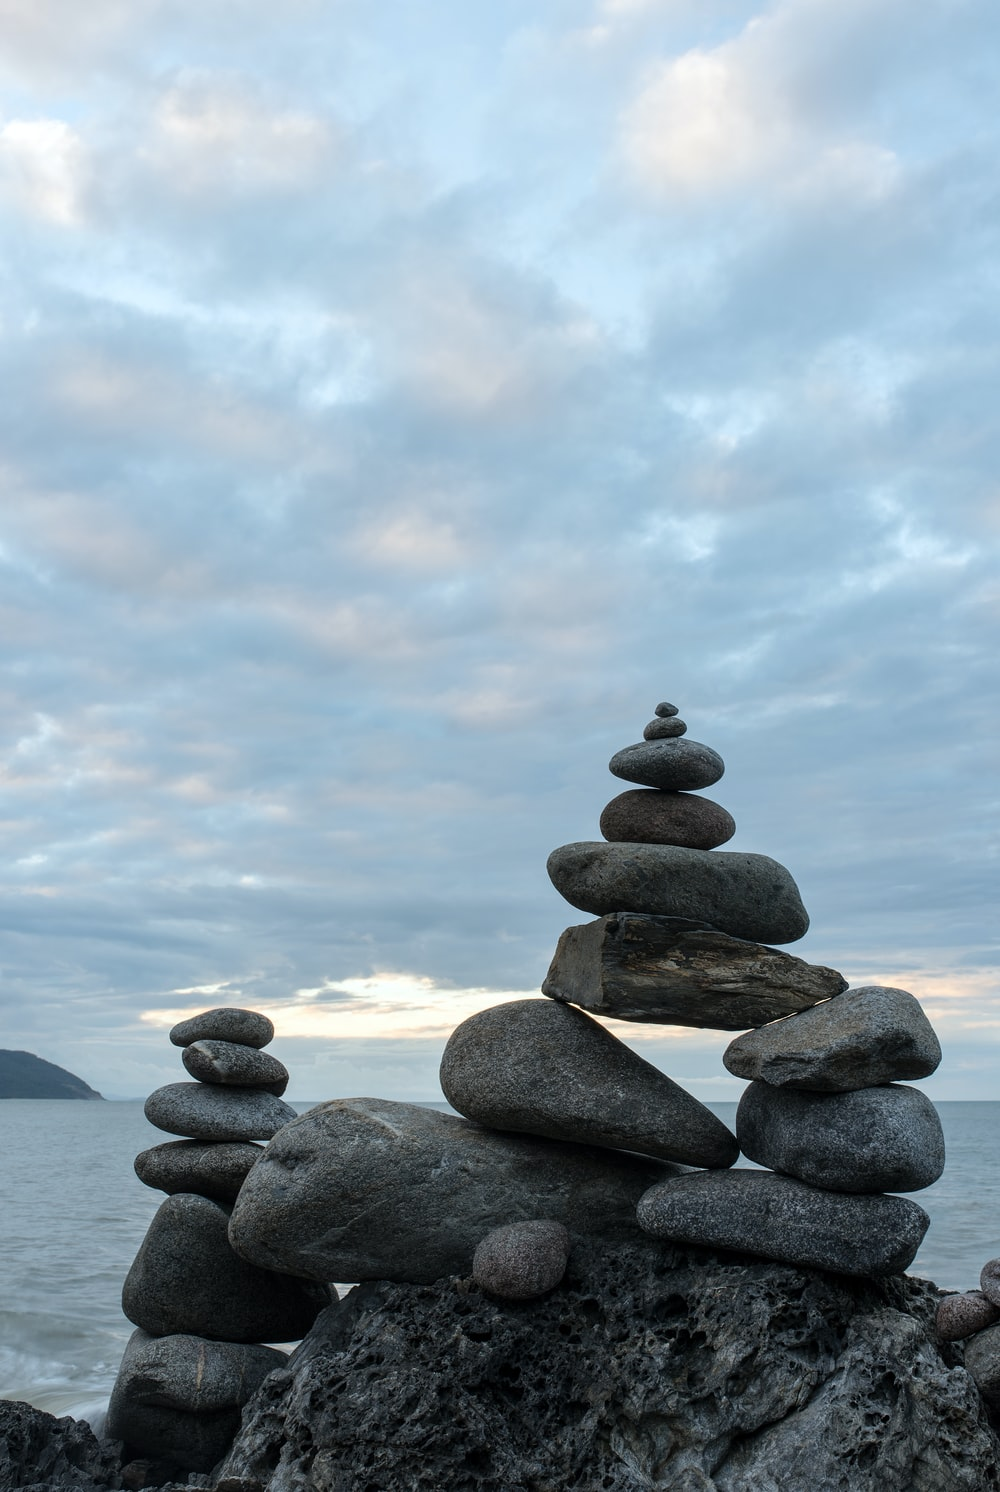 balanced stones on rock beside the ocean